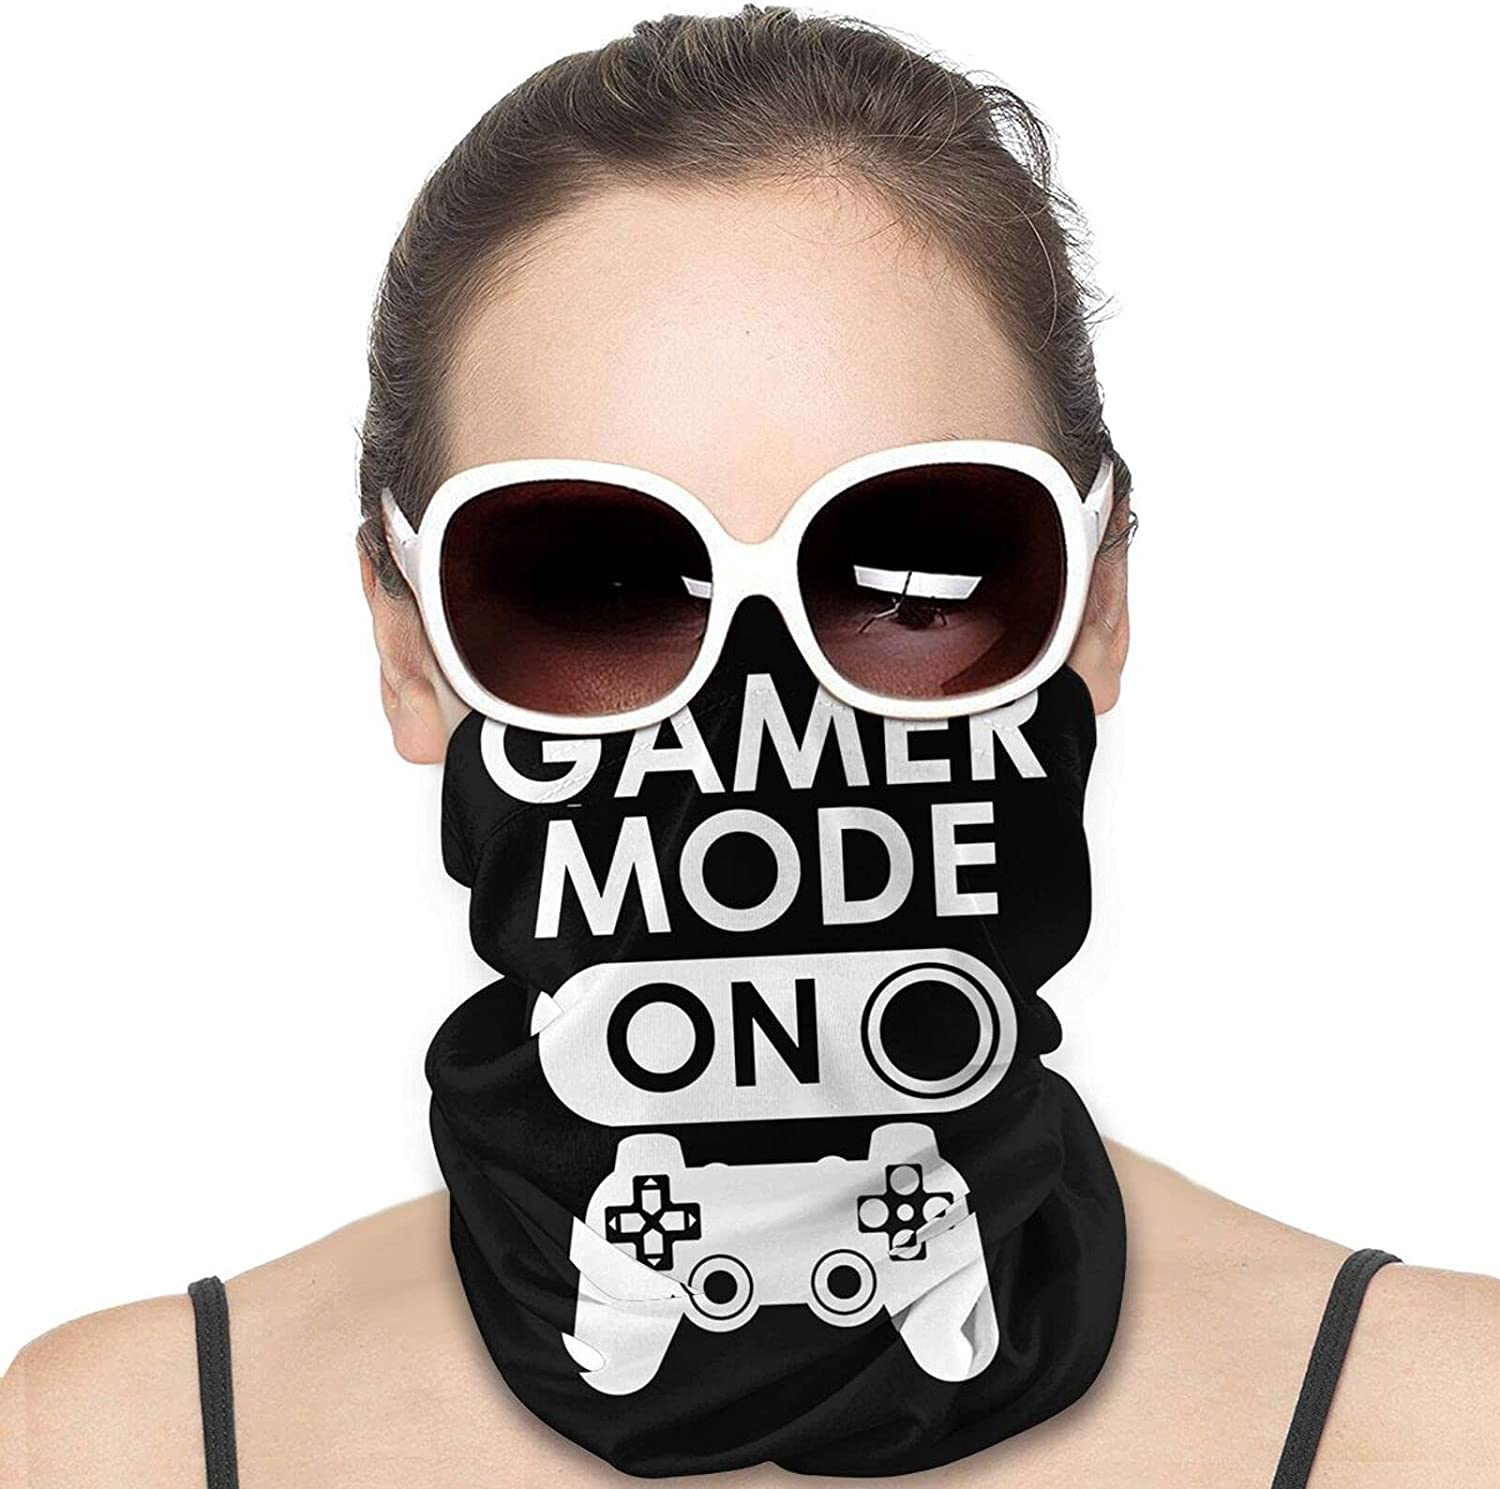 Gamer Mode On Round Neck Gaiter Bandnas Face Cover Uv Protection Prevent bask in Ice Scarf Headbands Perfect for Motorcycle Cycling Running Festival Raves Outdoors